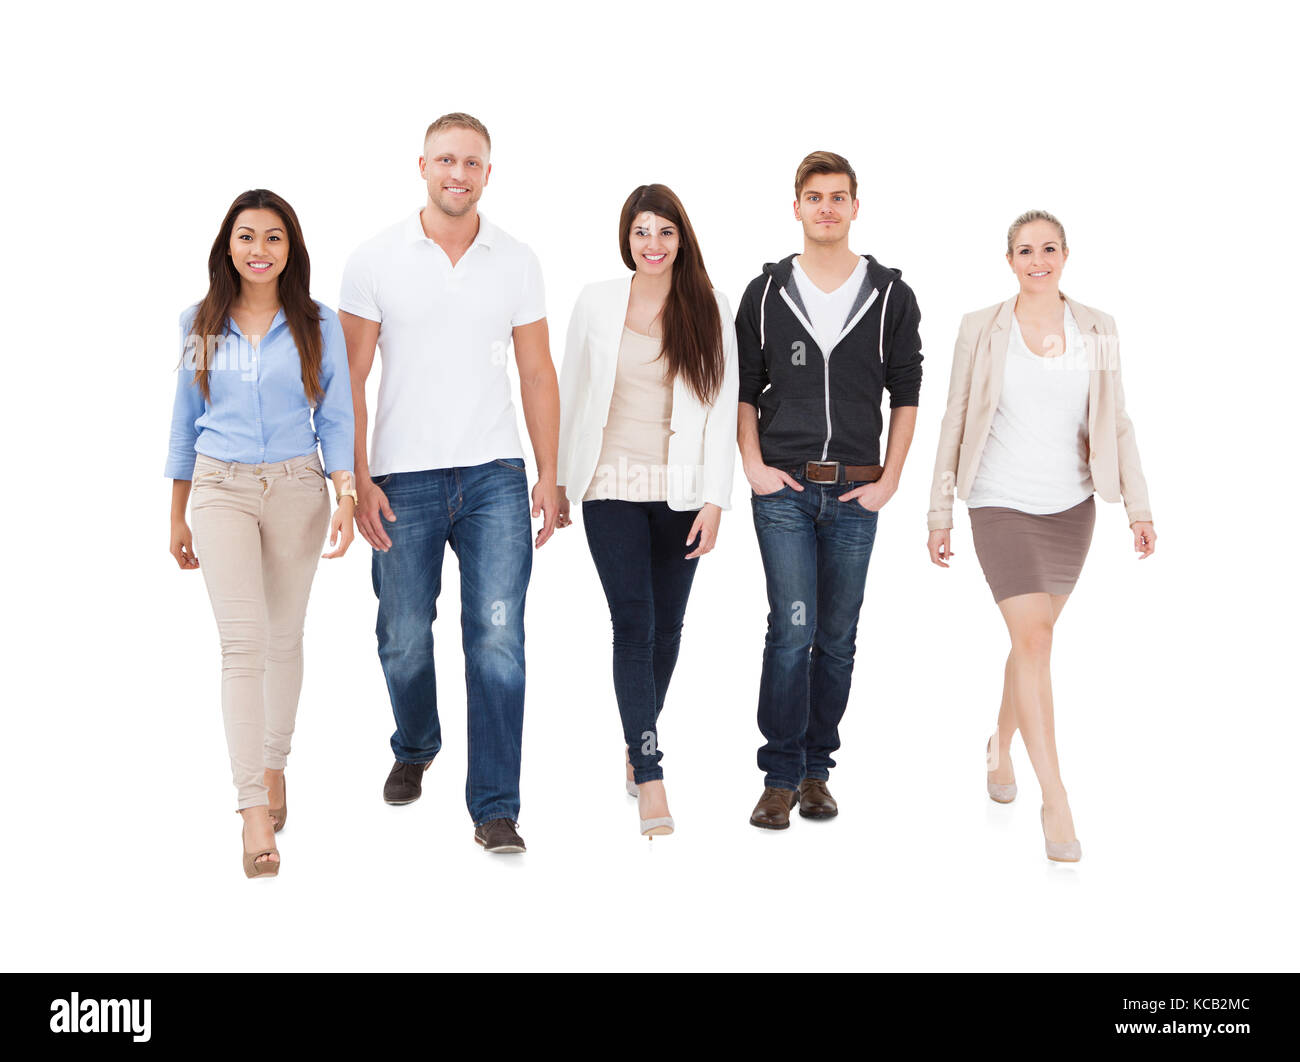 A Group Of Multi Ethnic People Walking On White Background - Stock Image